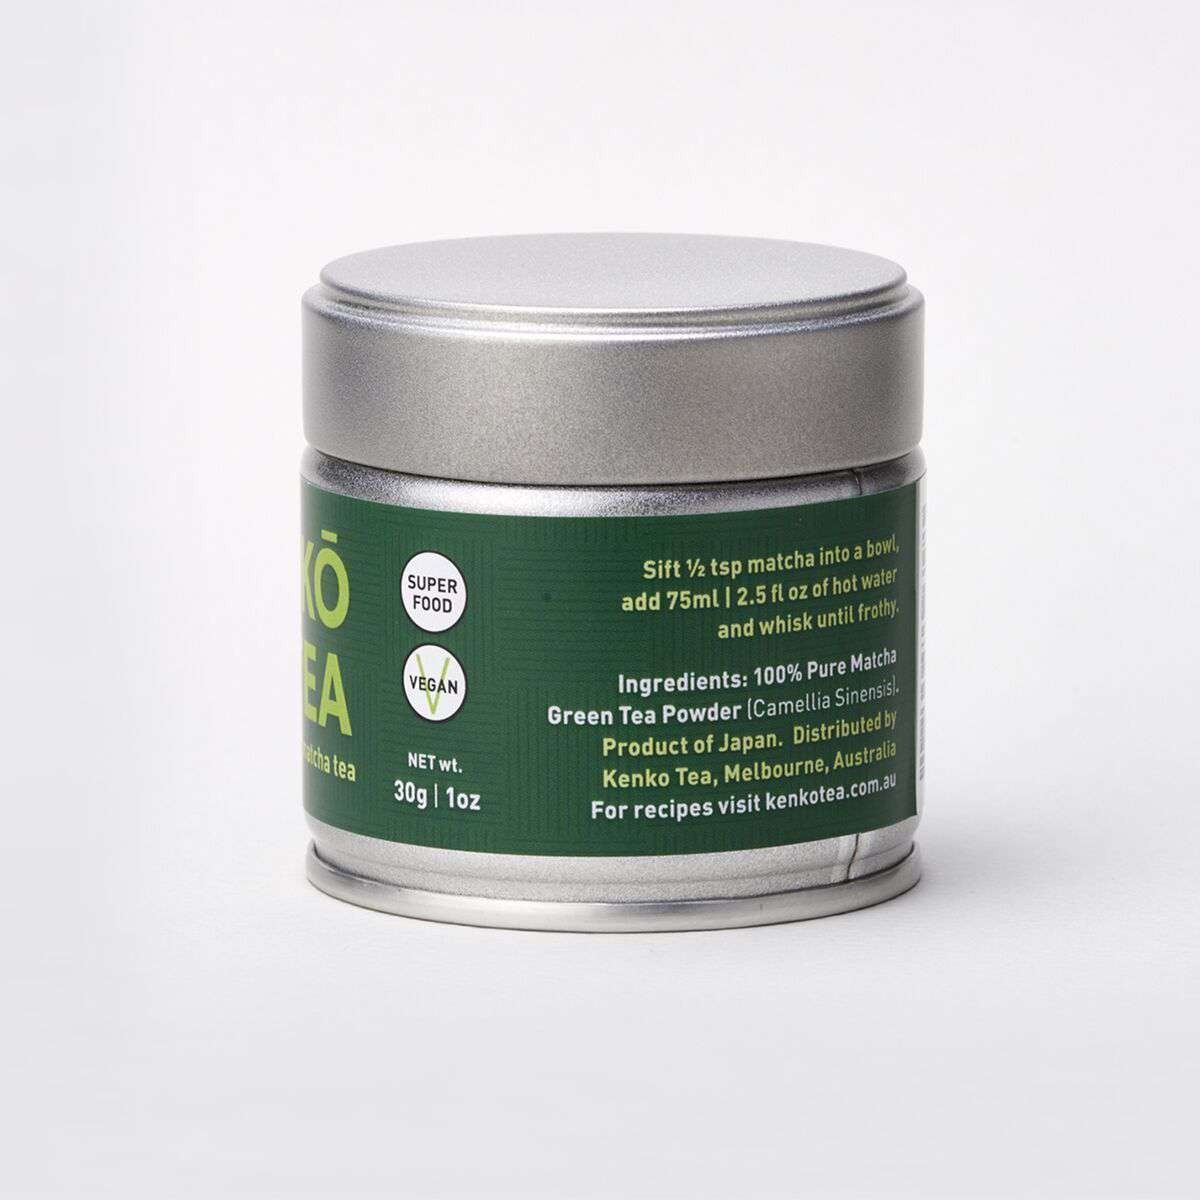 Premium Matcha Green Tea Powder Buy Online Australia